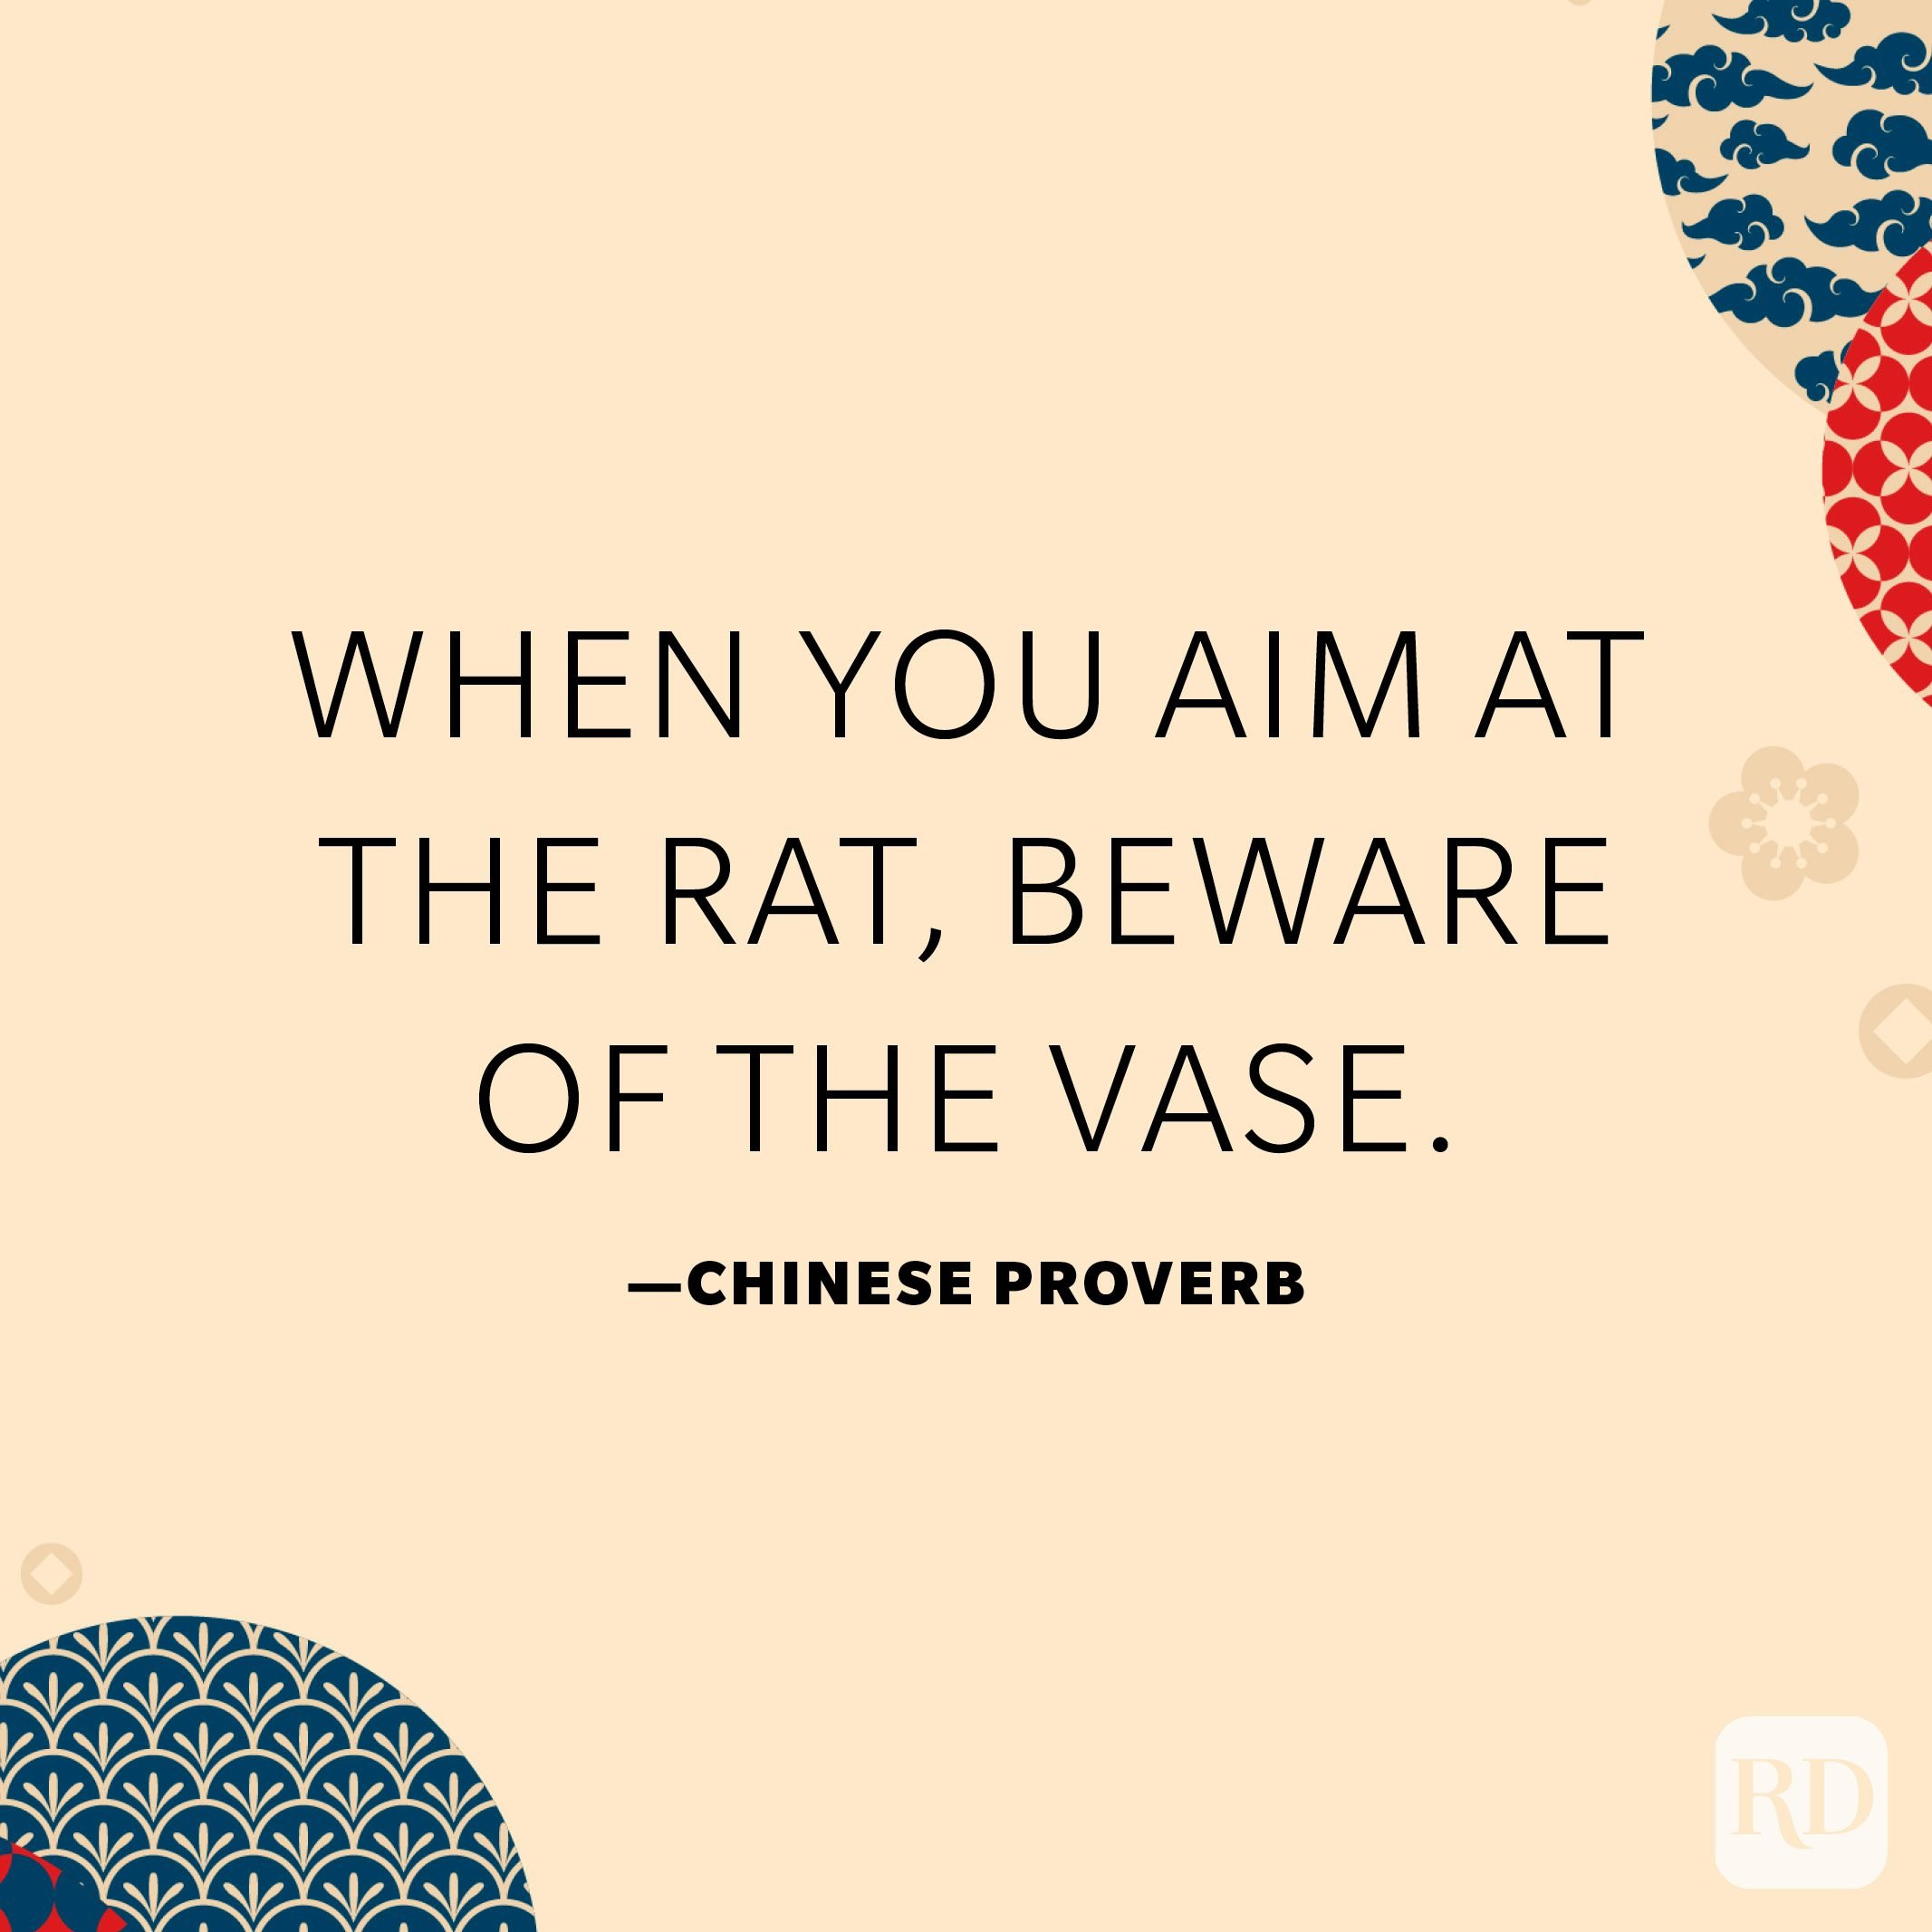 When you aim at the rat, beware of the vase.